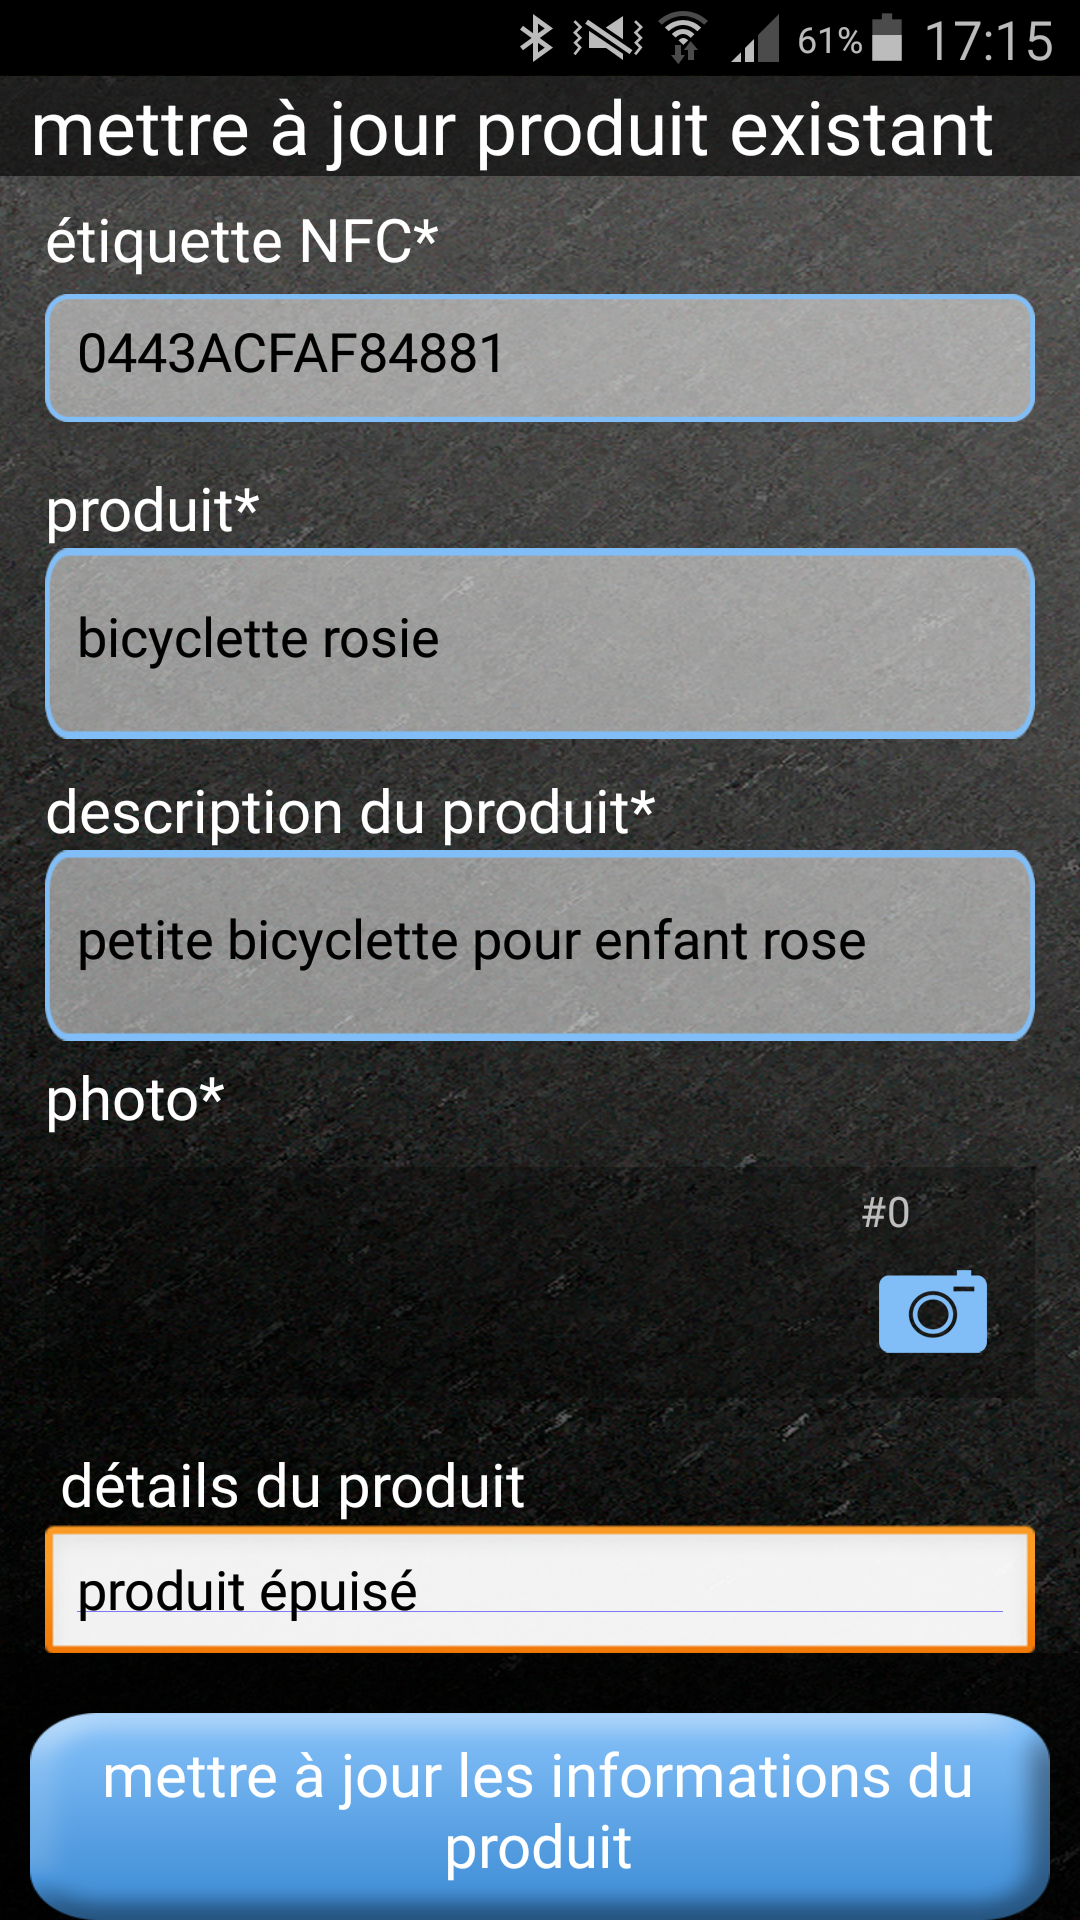 ginstr_app_productInformation_FR_5